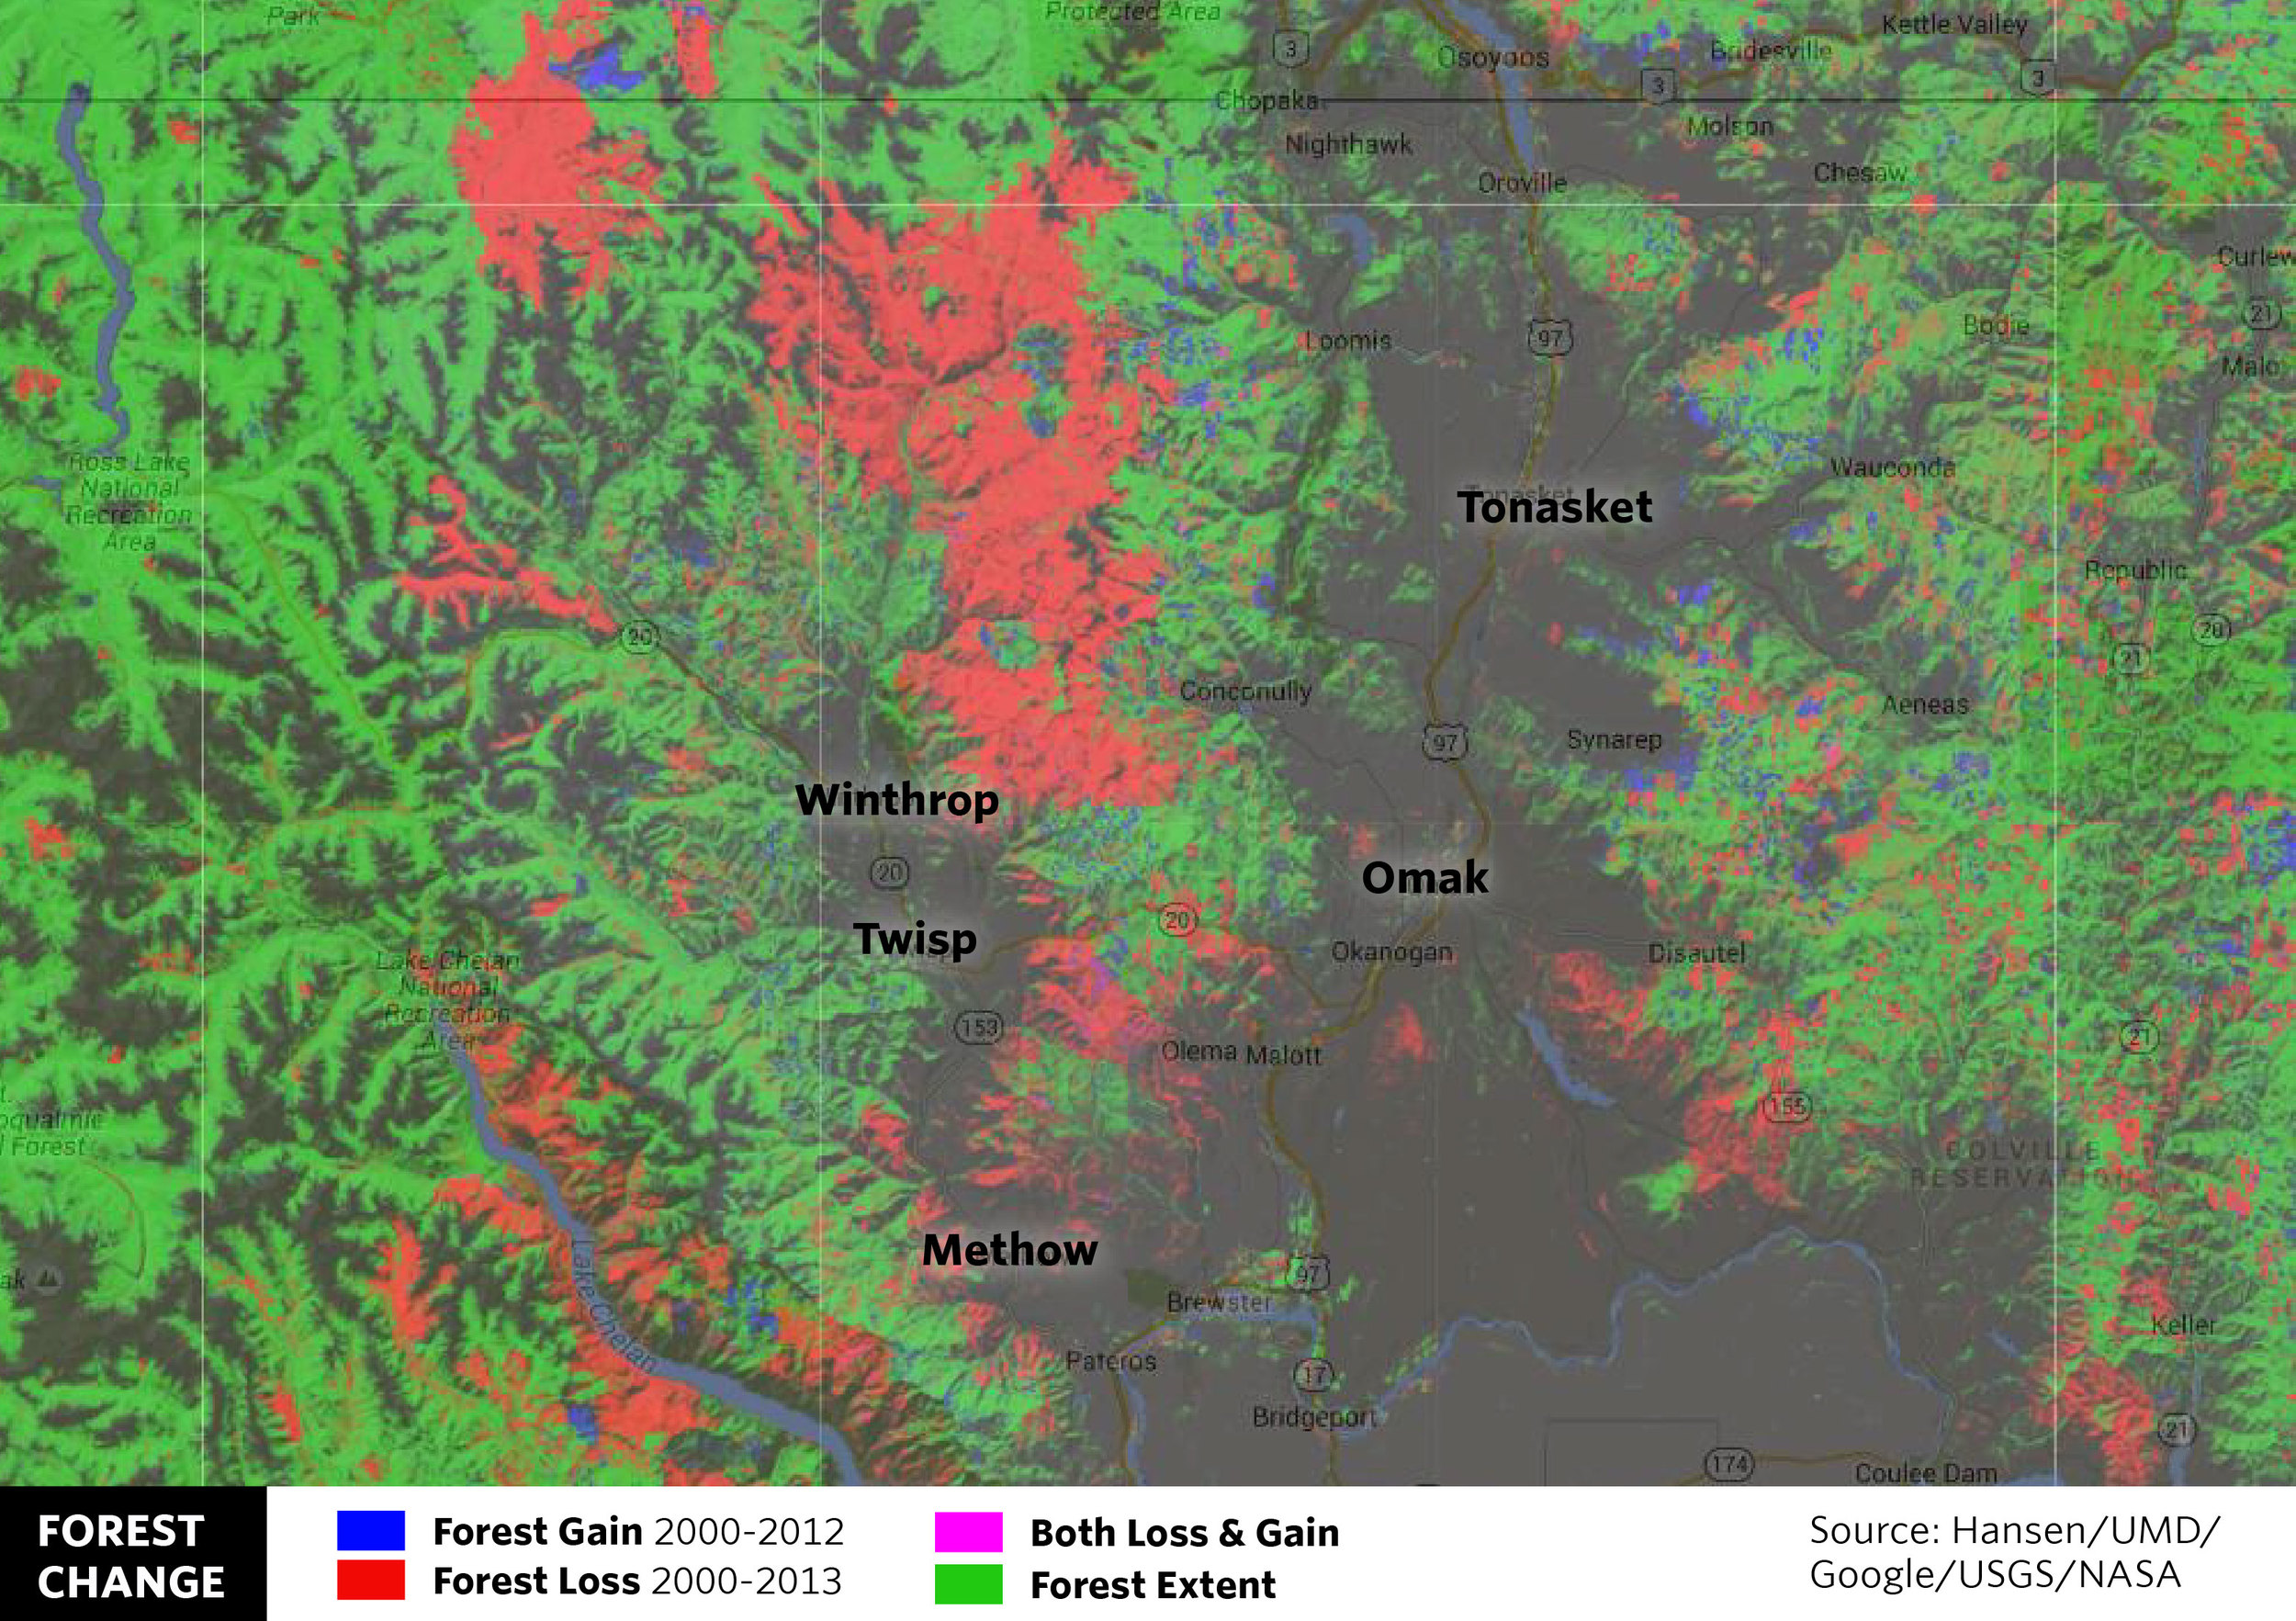 OKANOGAN: Striking swaths of red in north central Washington show forest loss as a result of the 2006 Tripod Complex wildfire, which burned over 175,000 acres. The Tripod Complex wildfire is now sandwiched between the 2014 Carlton Complex and the 2015 Okanogan complex fires, which burned over 500,000 combined acres.